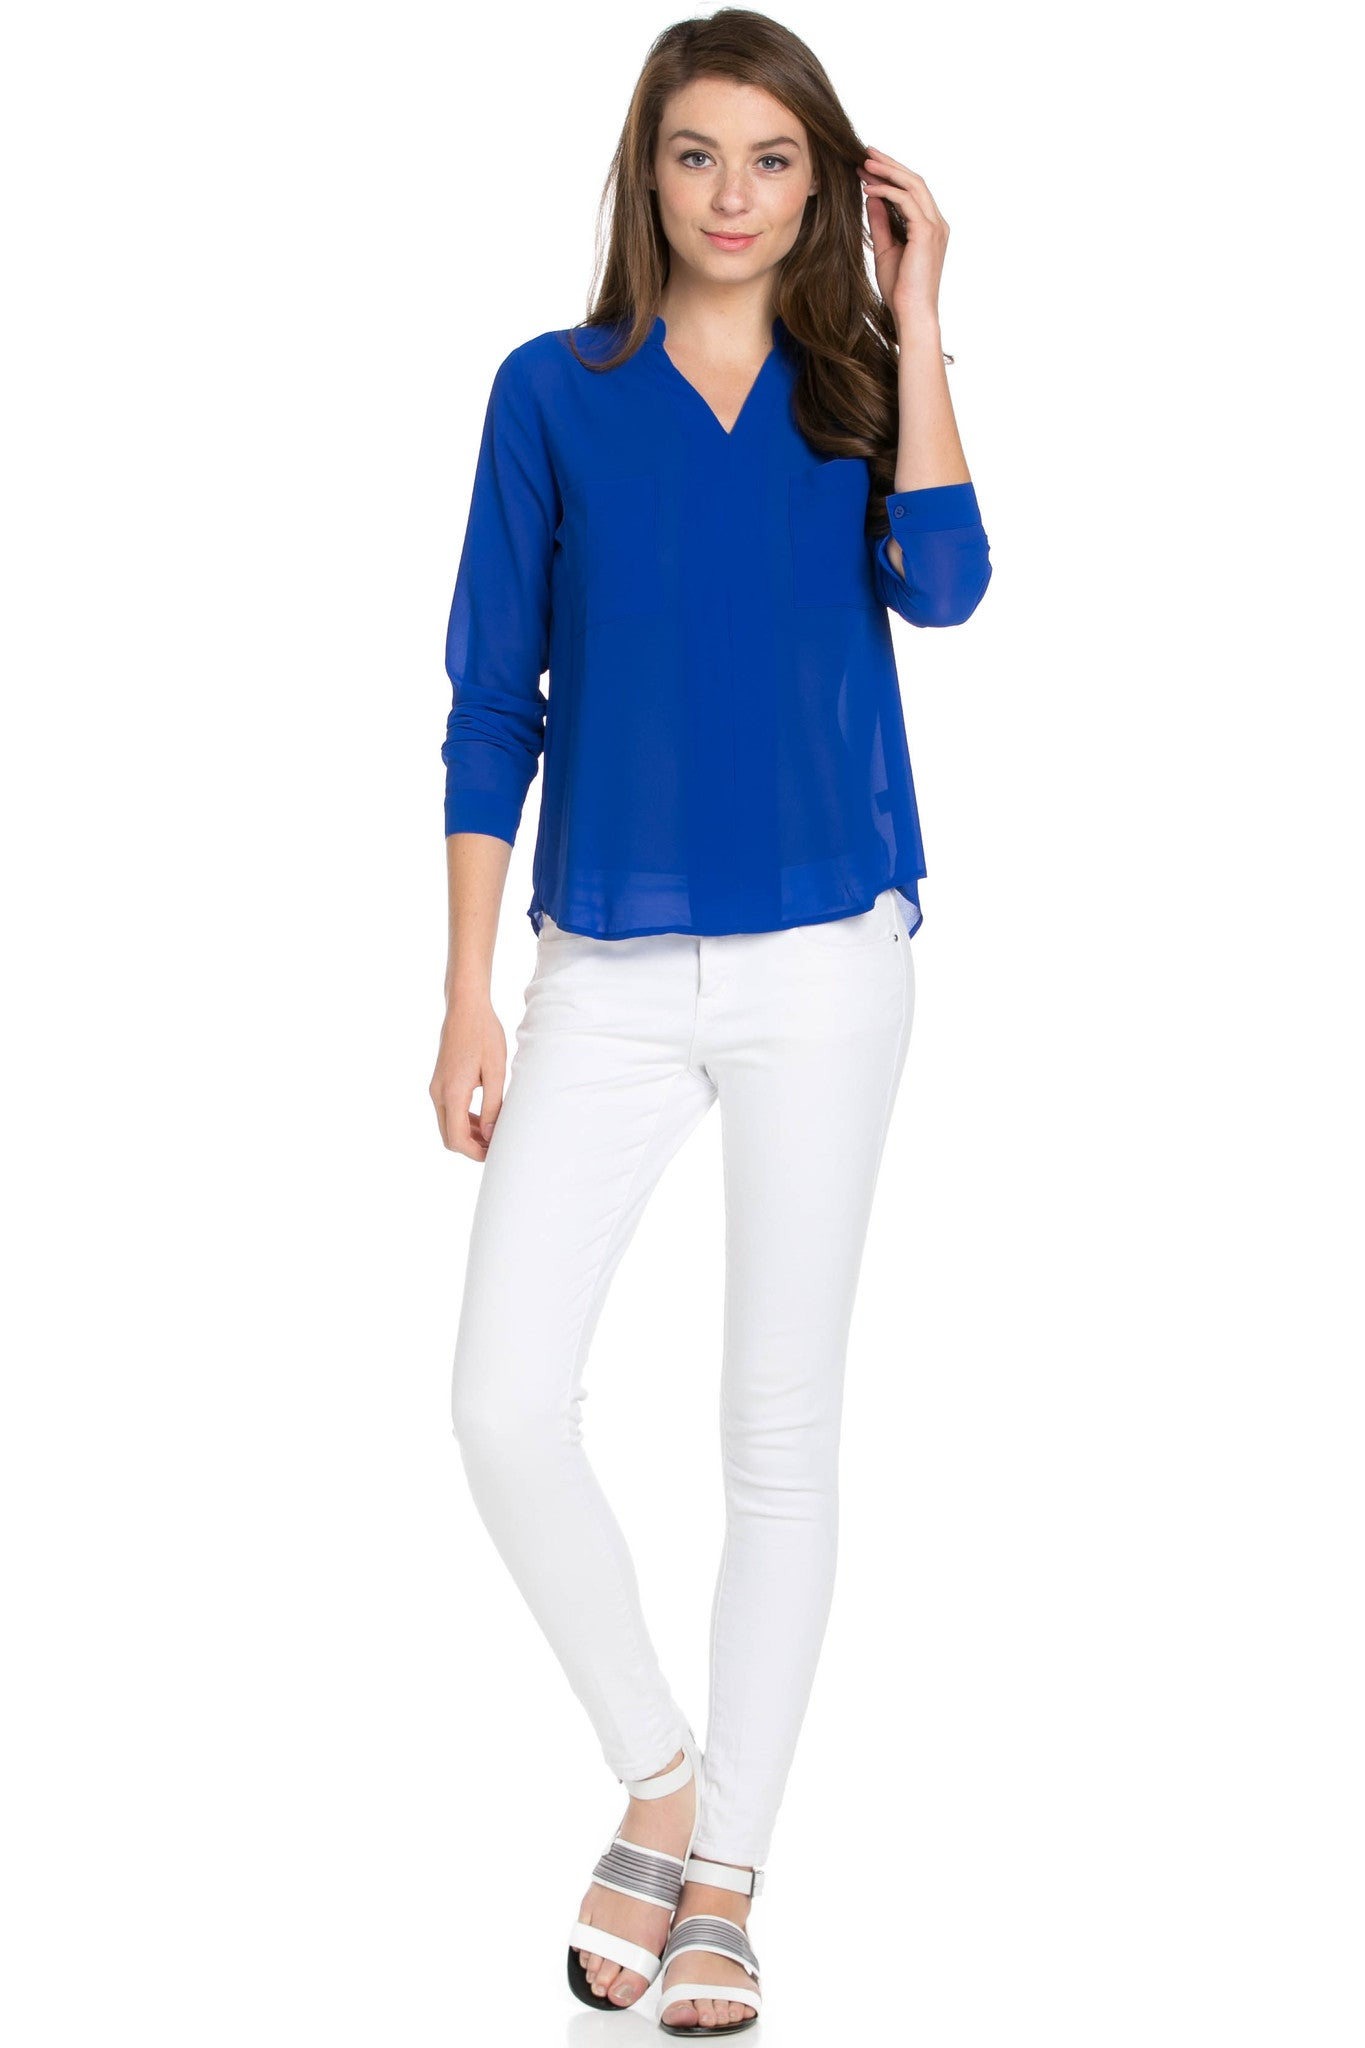 V-Neck Chiffon Blouse Dazzling Blue - Tops - My Yuccie - 5